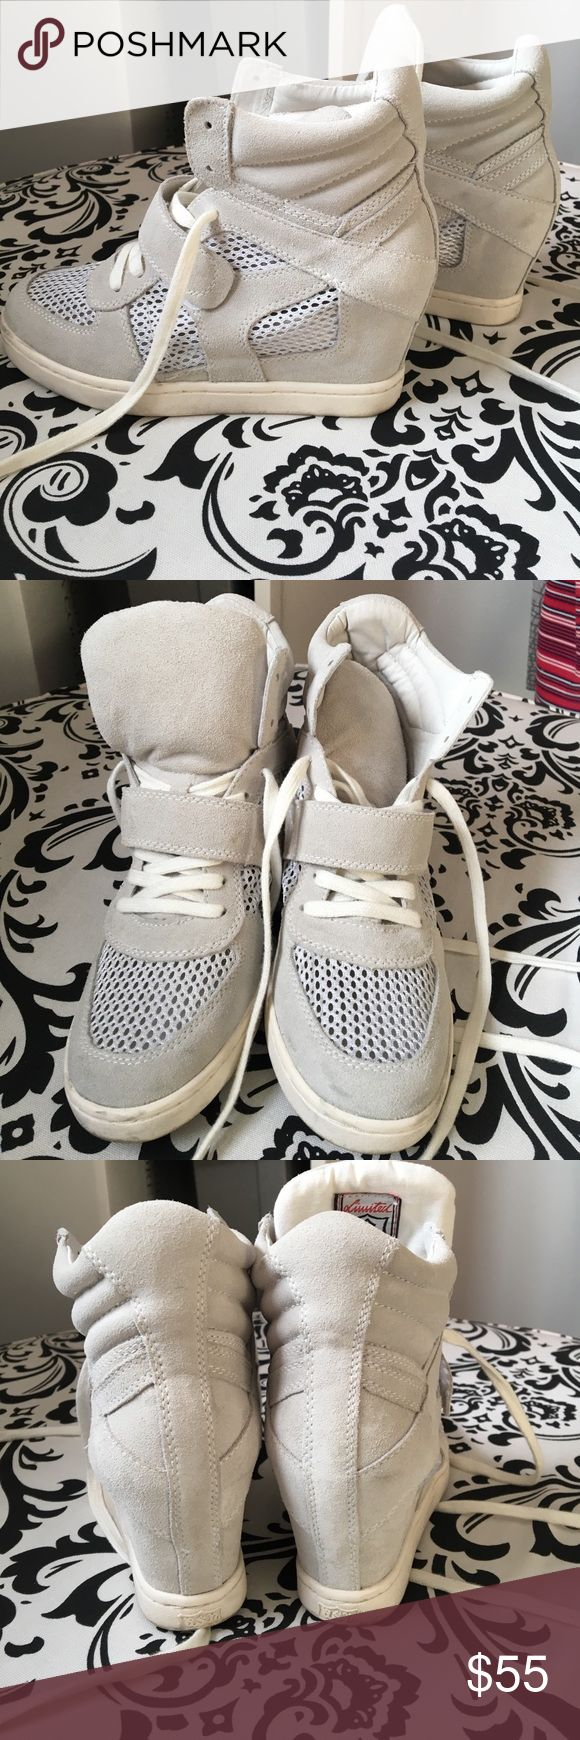 ASH sneaker wedges Worn a few times. No significant signs of wear Ash Shoes Sneakers